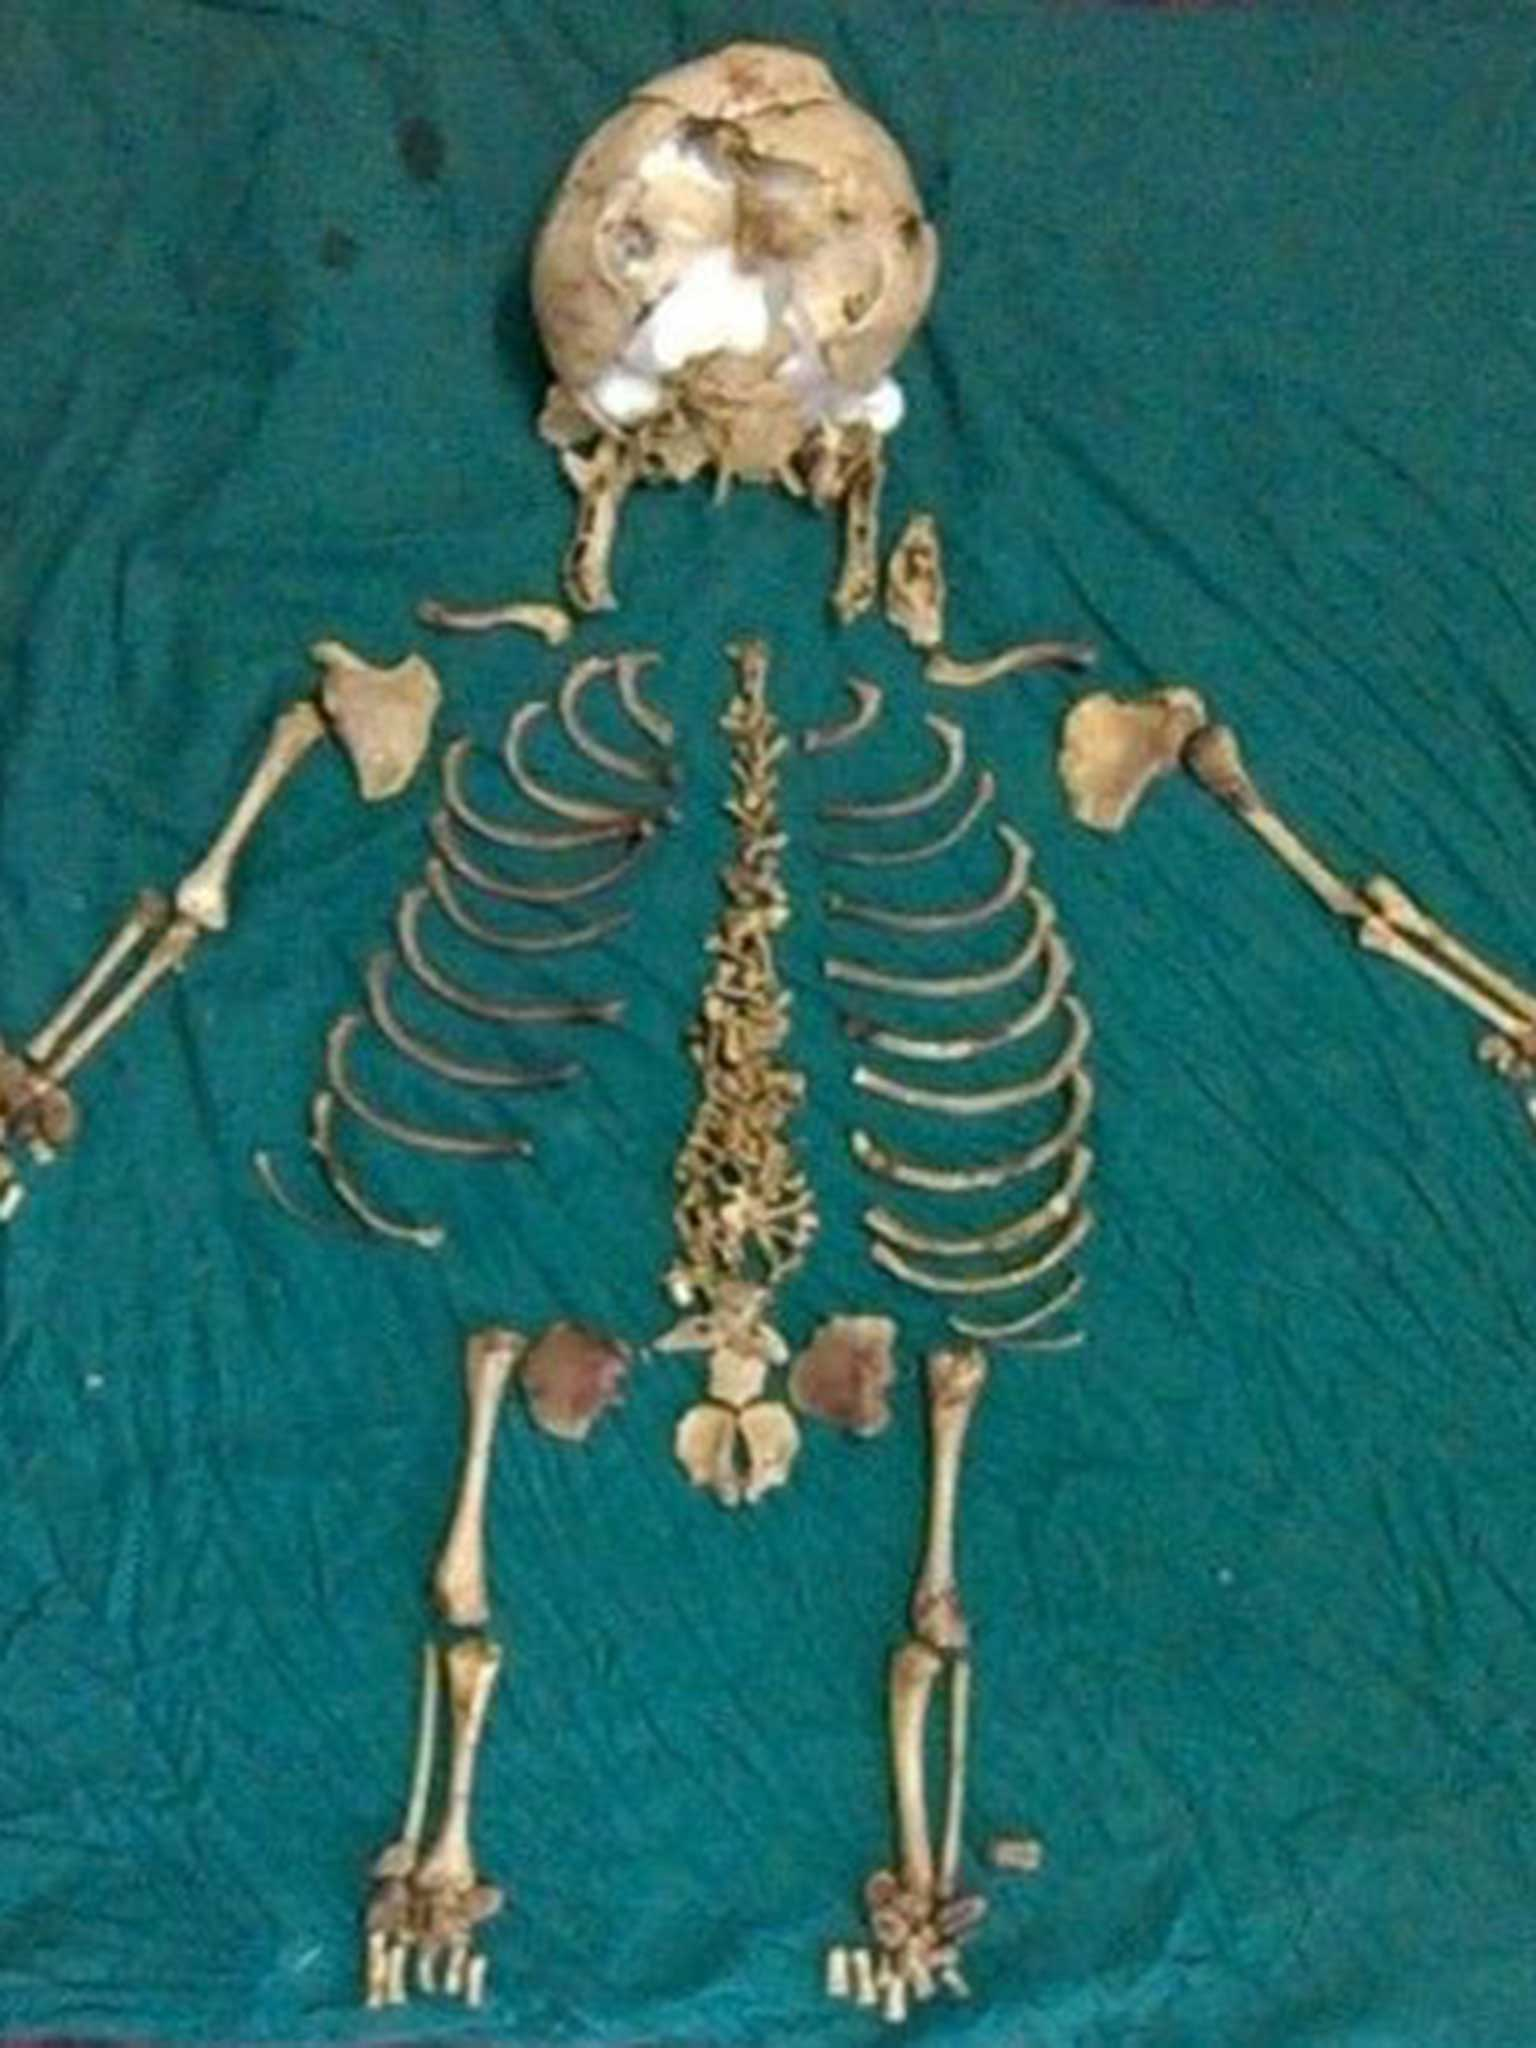 36 Year Old Skeleton Of Dead Baby Found Inside Indian Woman The